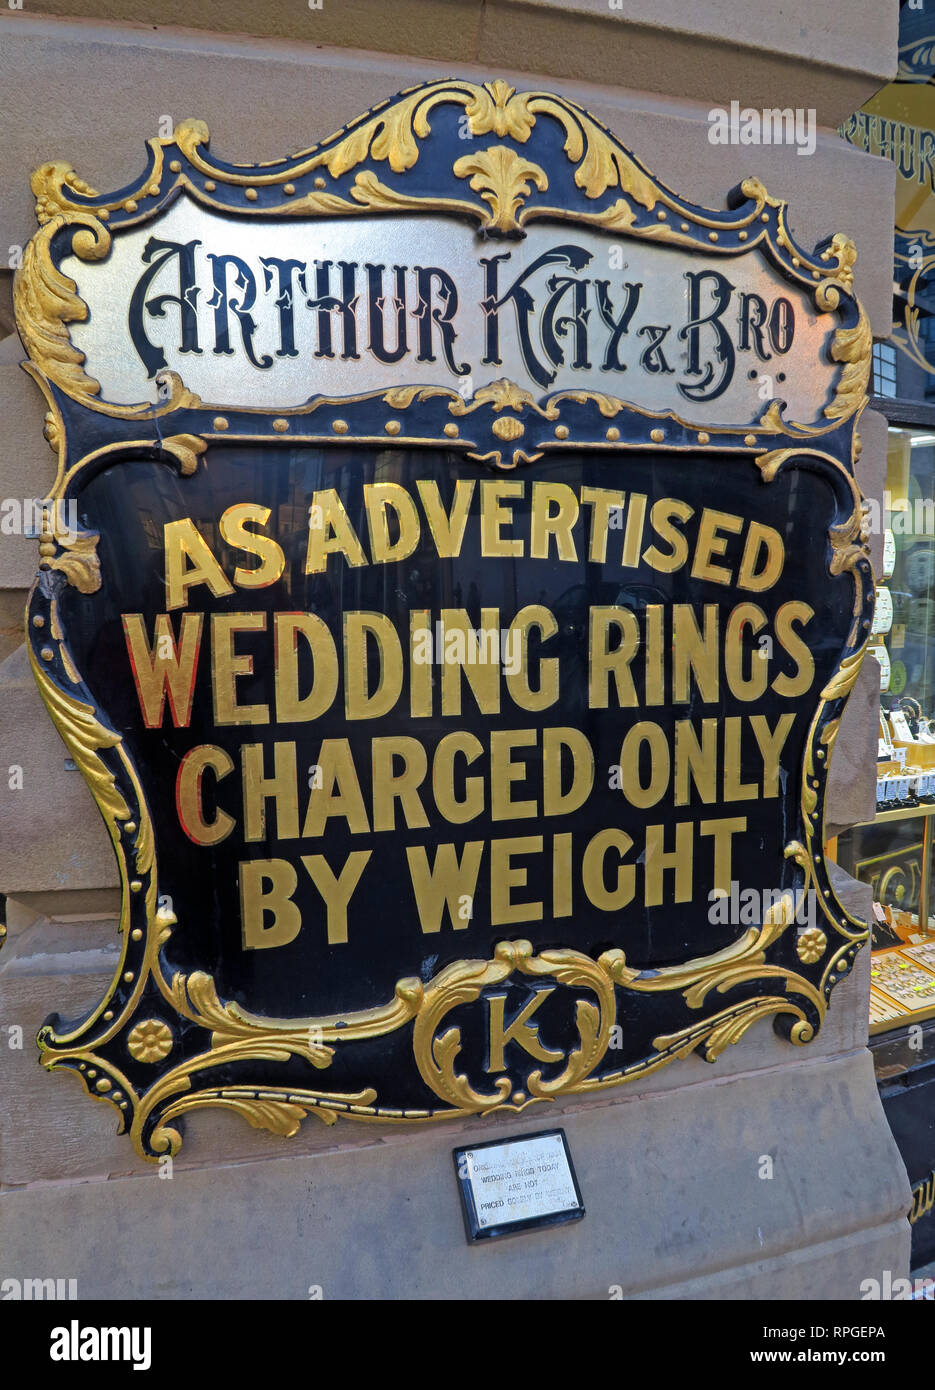 Arthur Kay & Bros, Jewellers Shop, 2 New Market, Manchester, North west england, UK,  M1 1PT - Stock Image